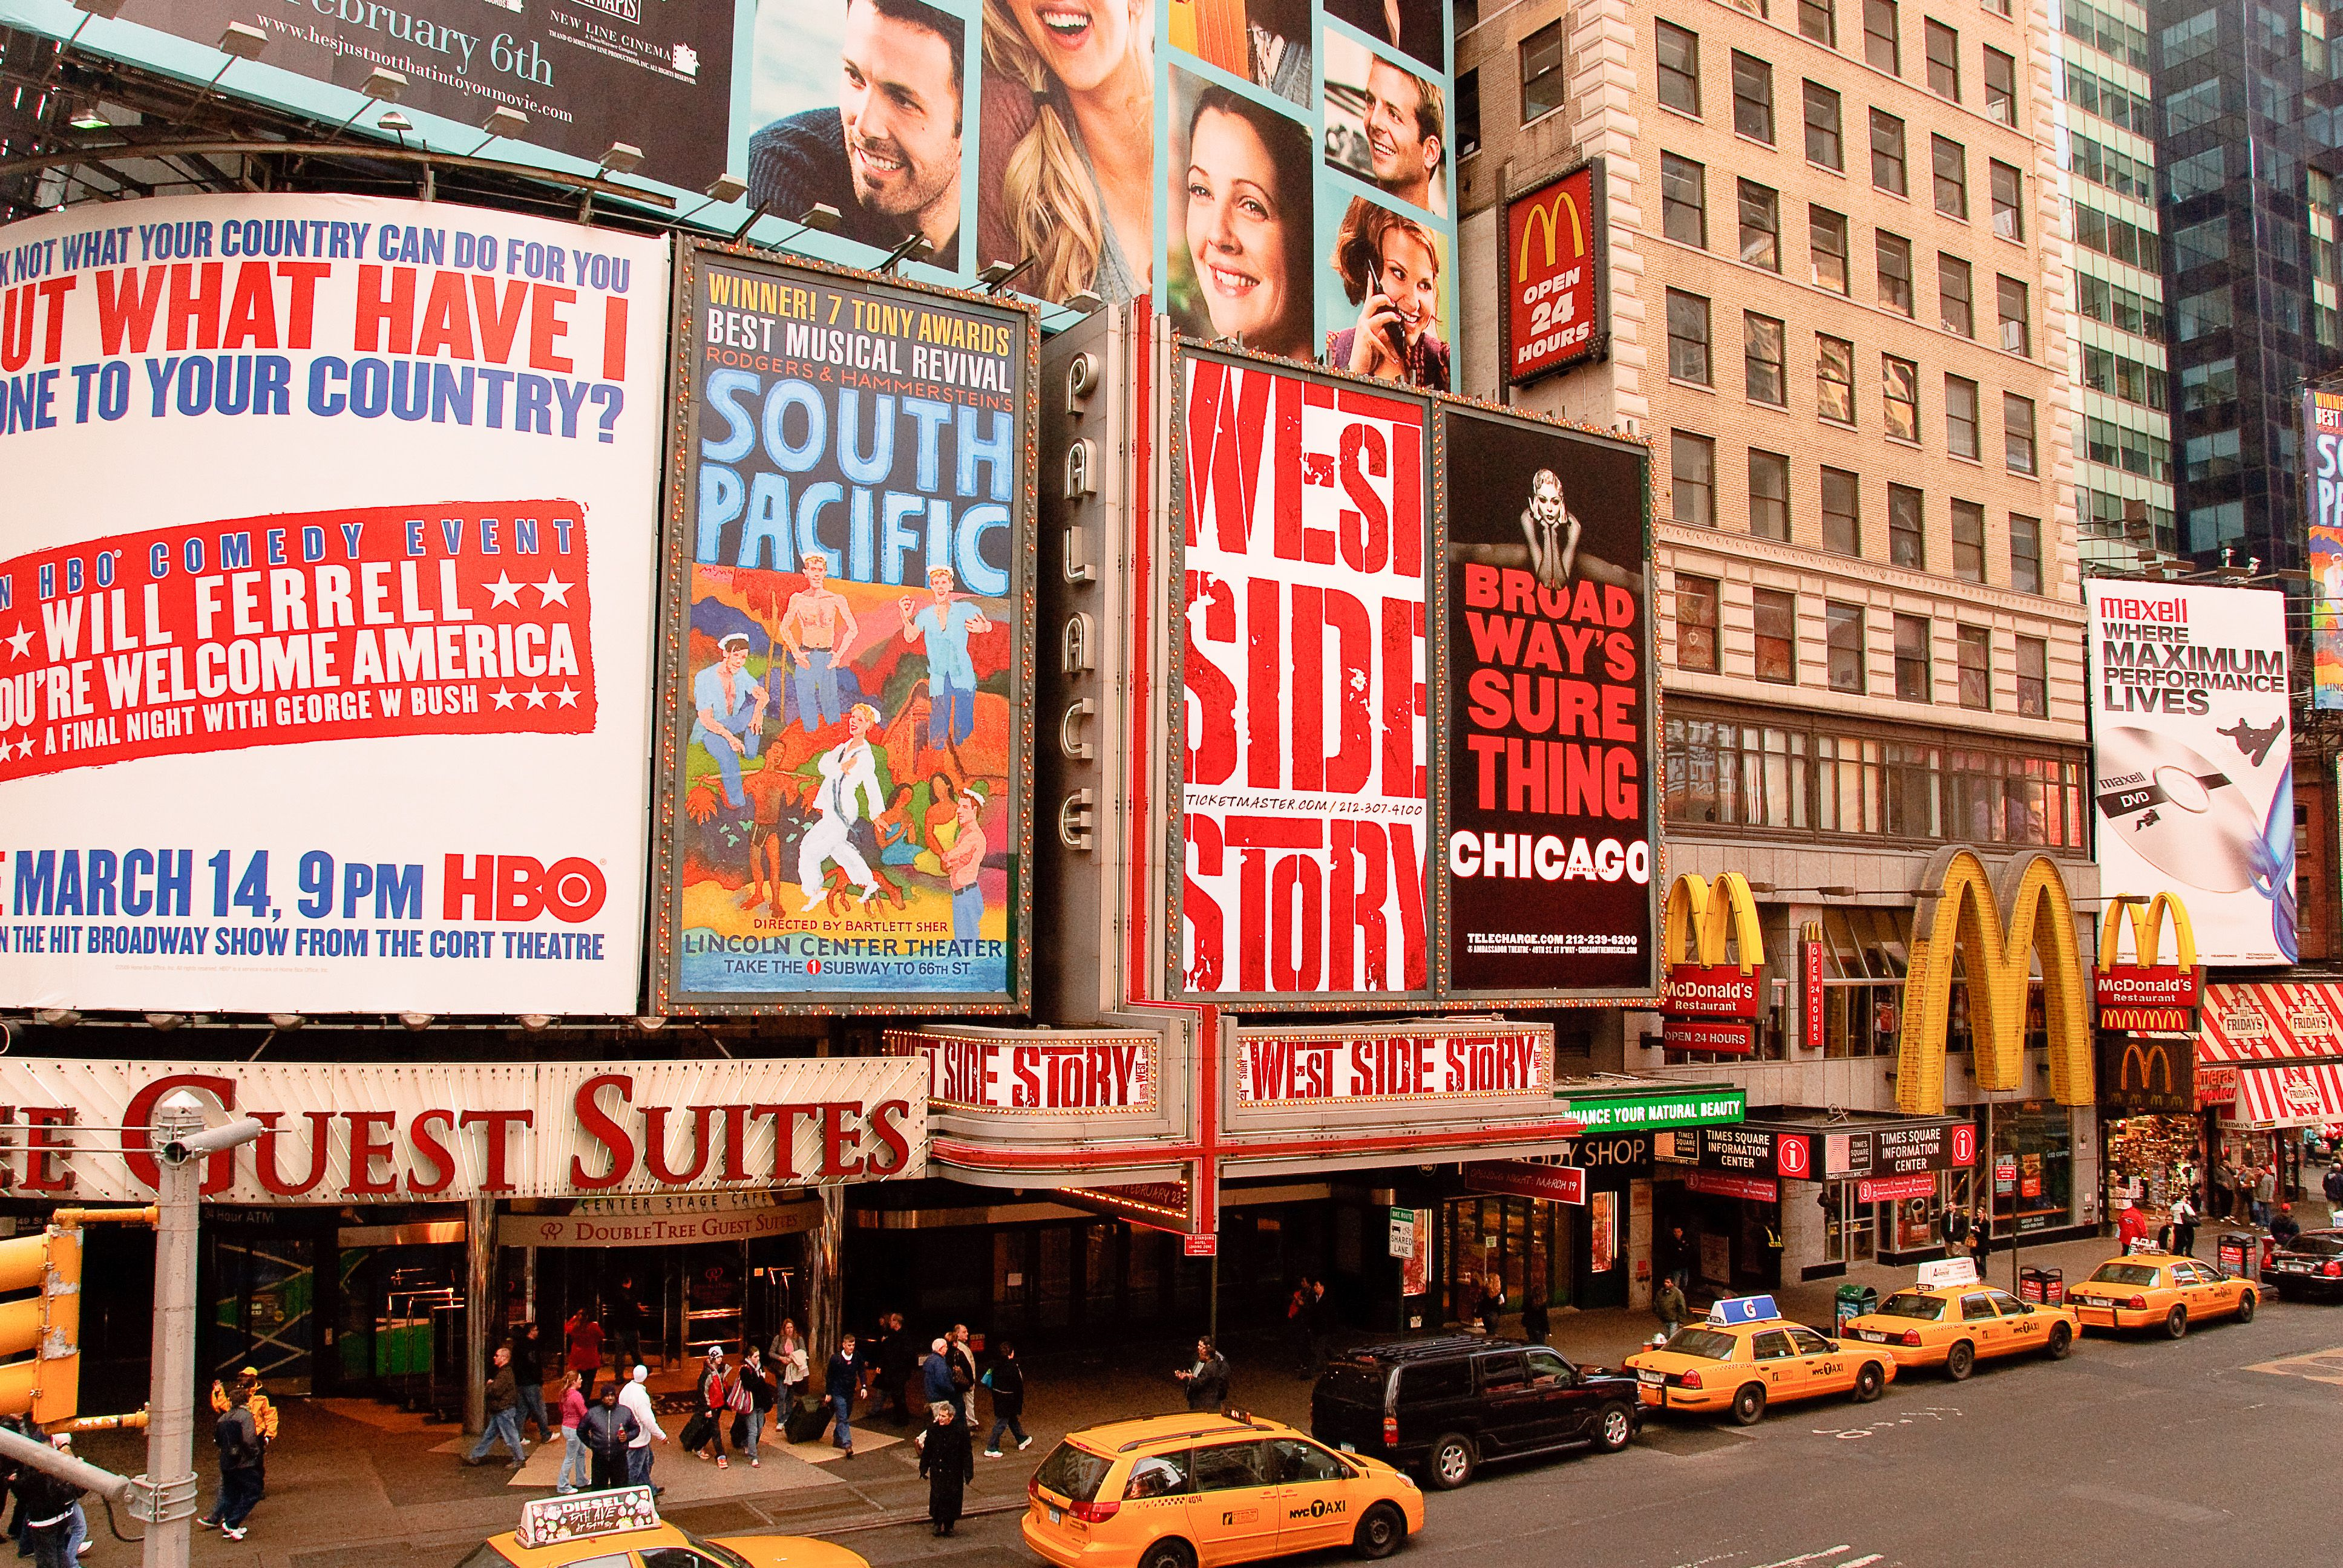 New York City Theatre District Welcoming America Theater District New York City